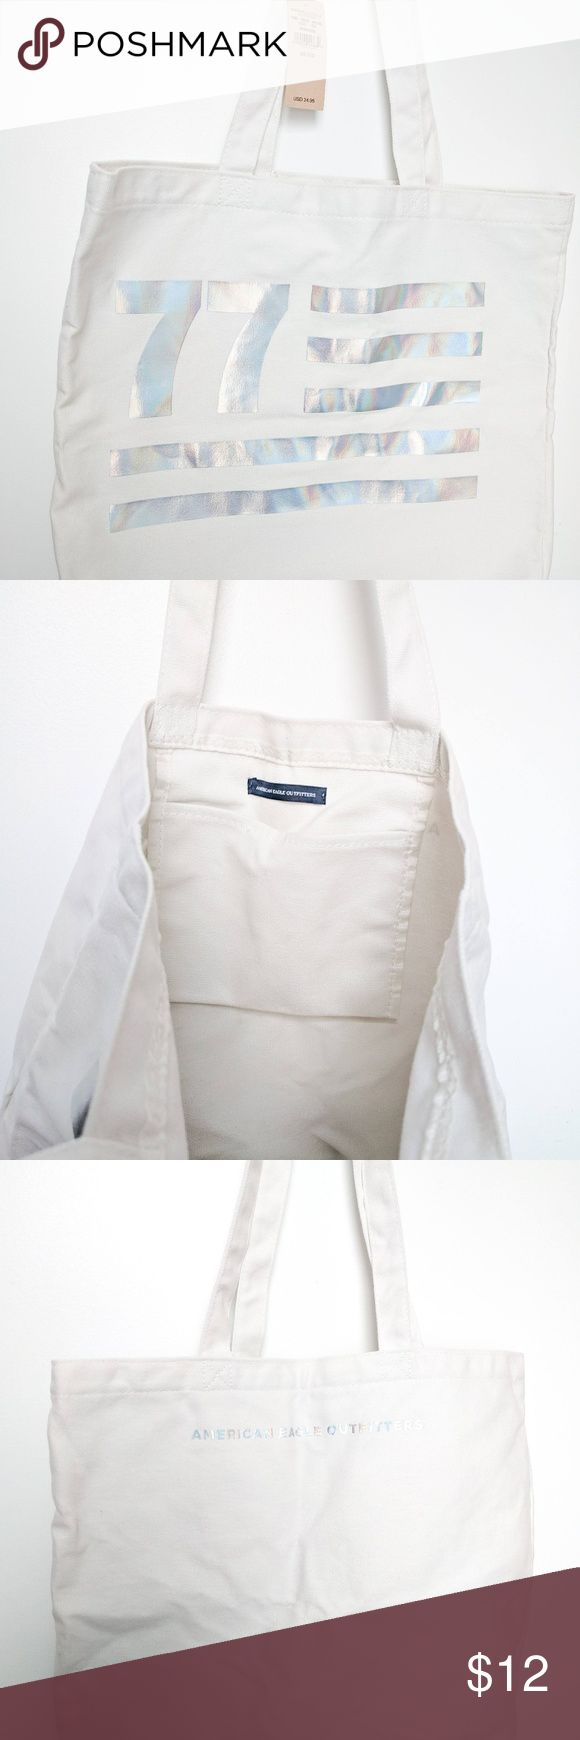 NWT American Eagle White Tote Bag Brand New NWT American Eagle white tote bag with holographic lettering. Never used! American Eagle Outfitters Bags Totes